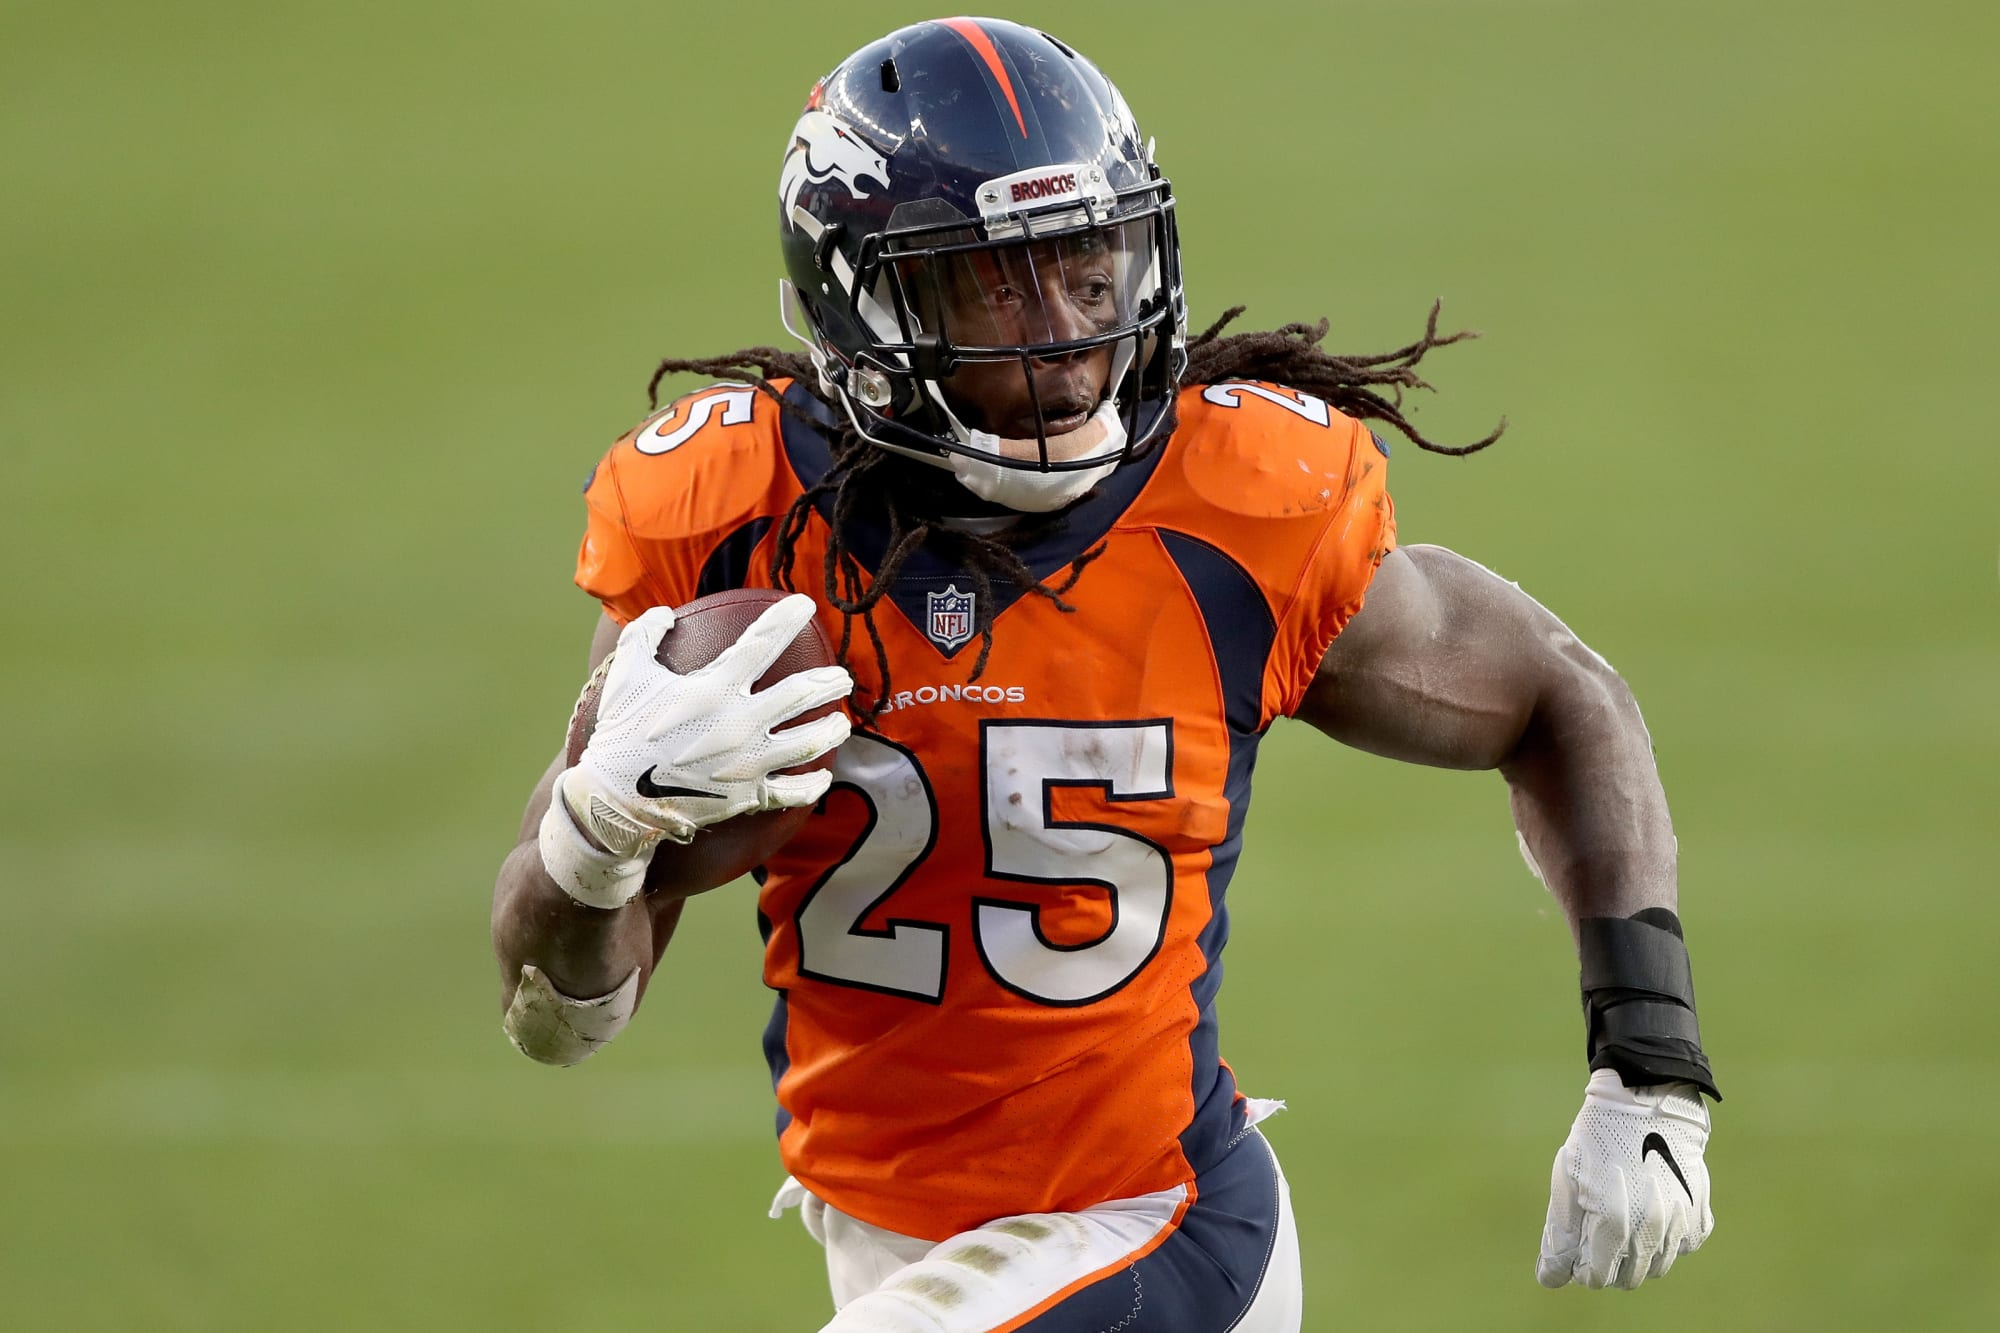 Denver Broncos: Trading Melvin Gordon to Rams might be a possibility